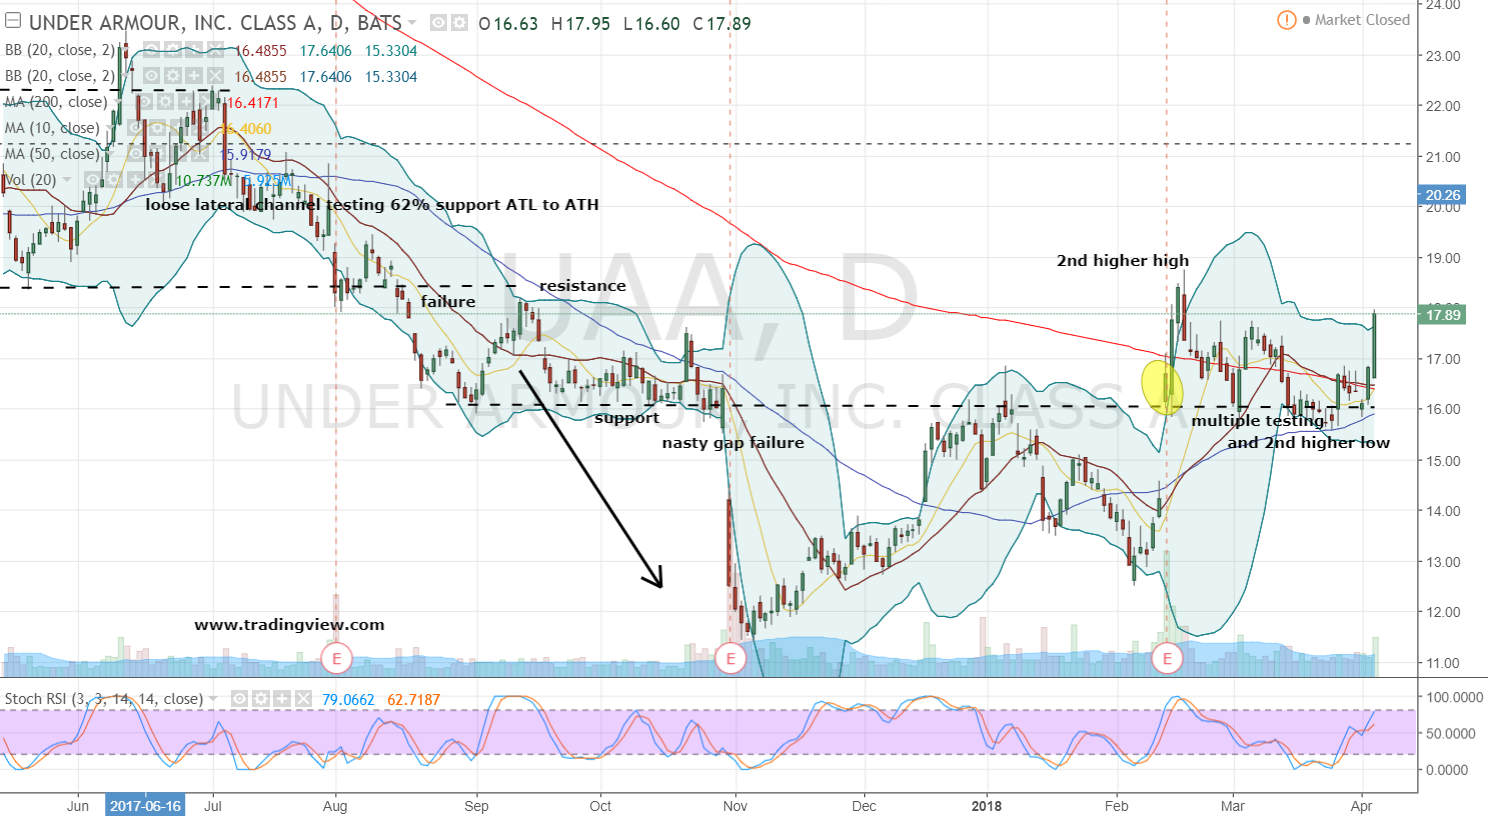 It's Time to Get Excited About Under Armour, Inc. (UAA)?